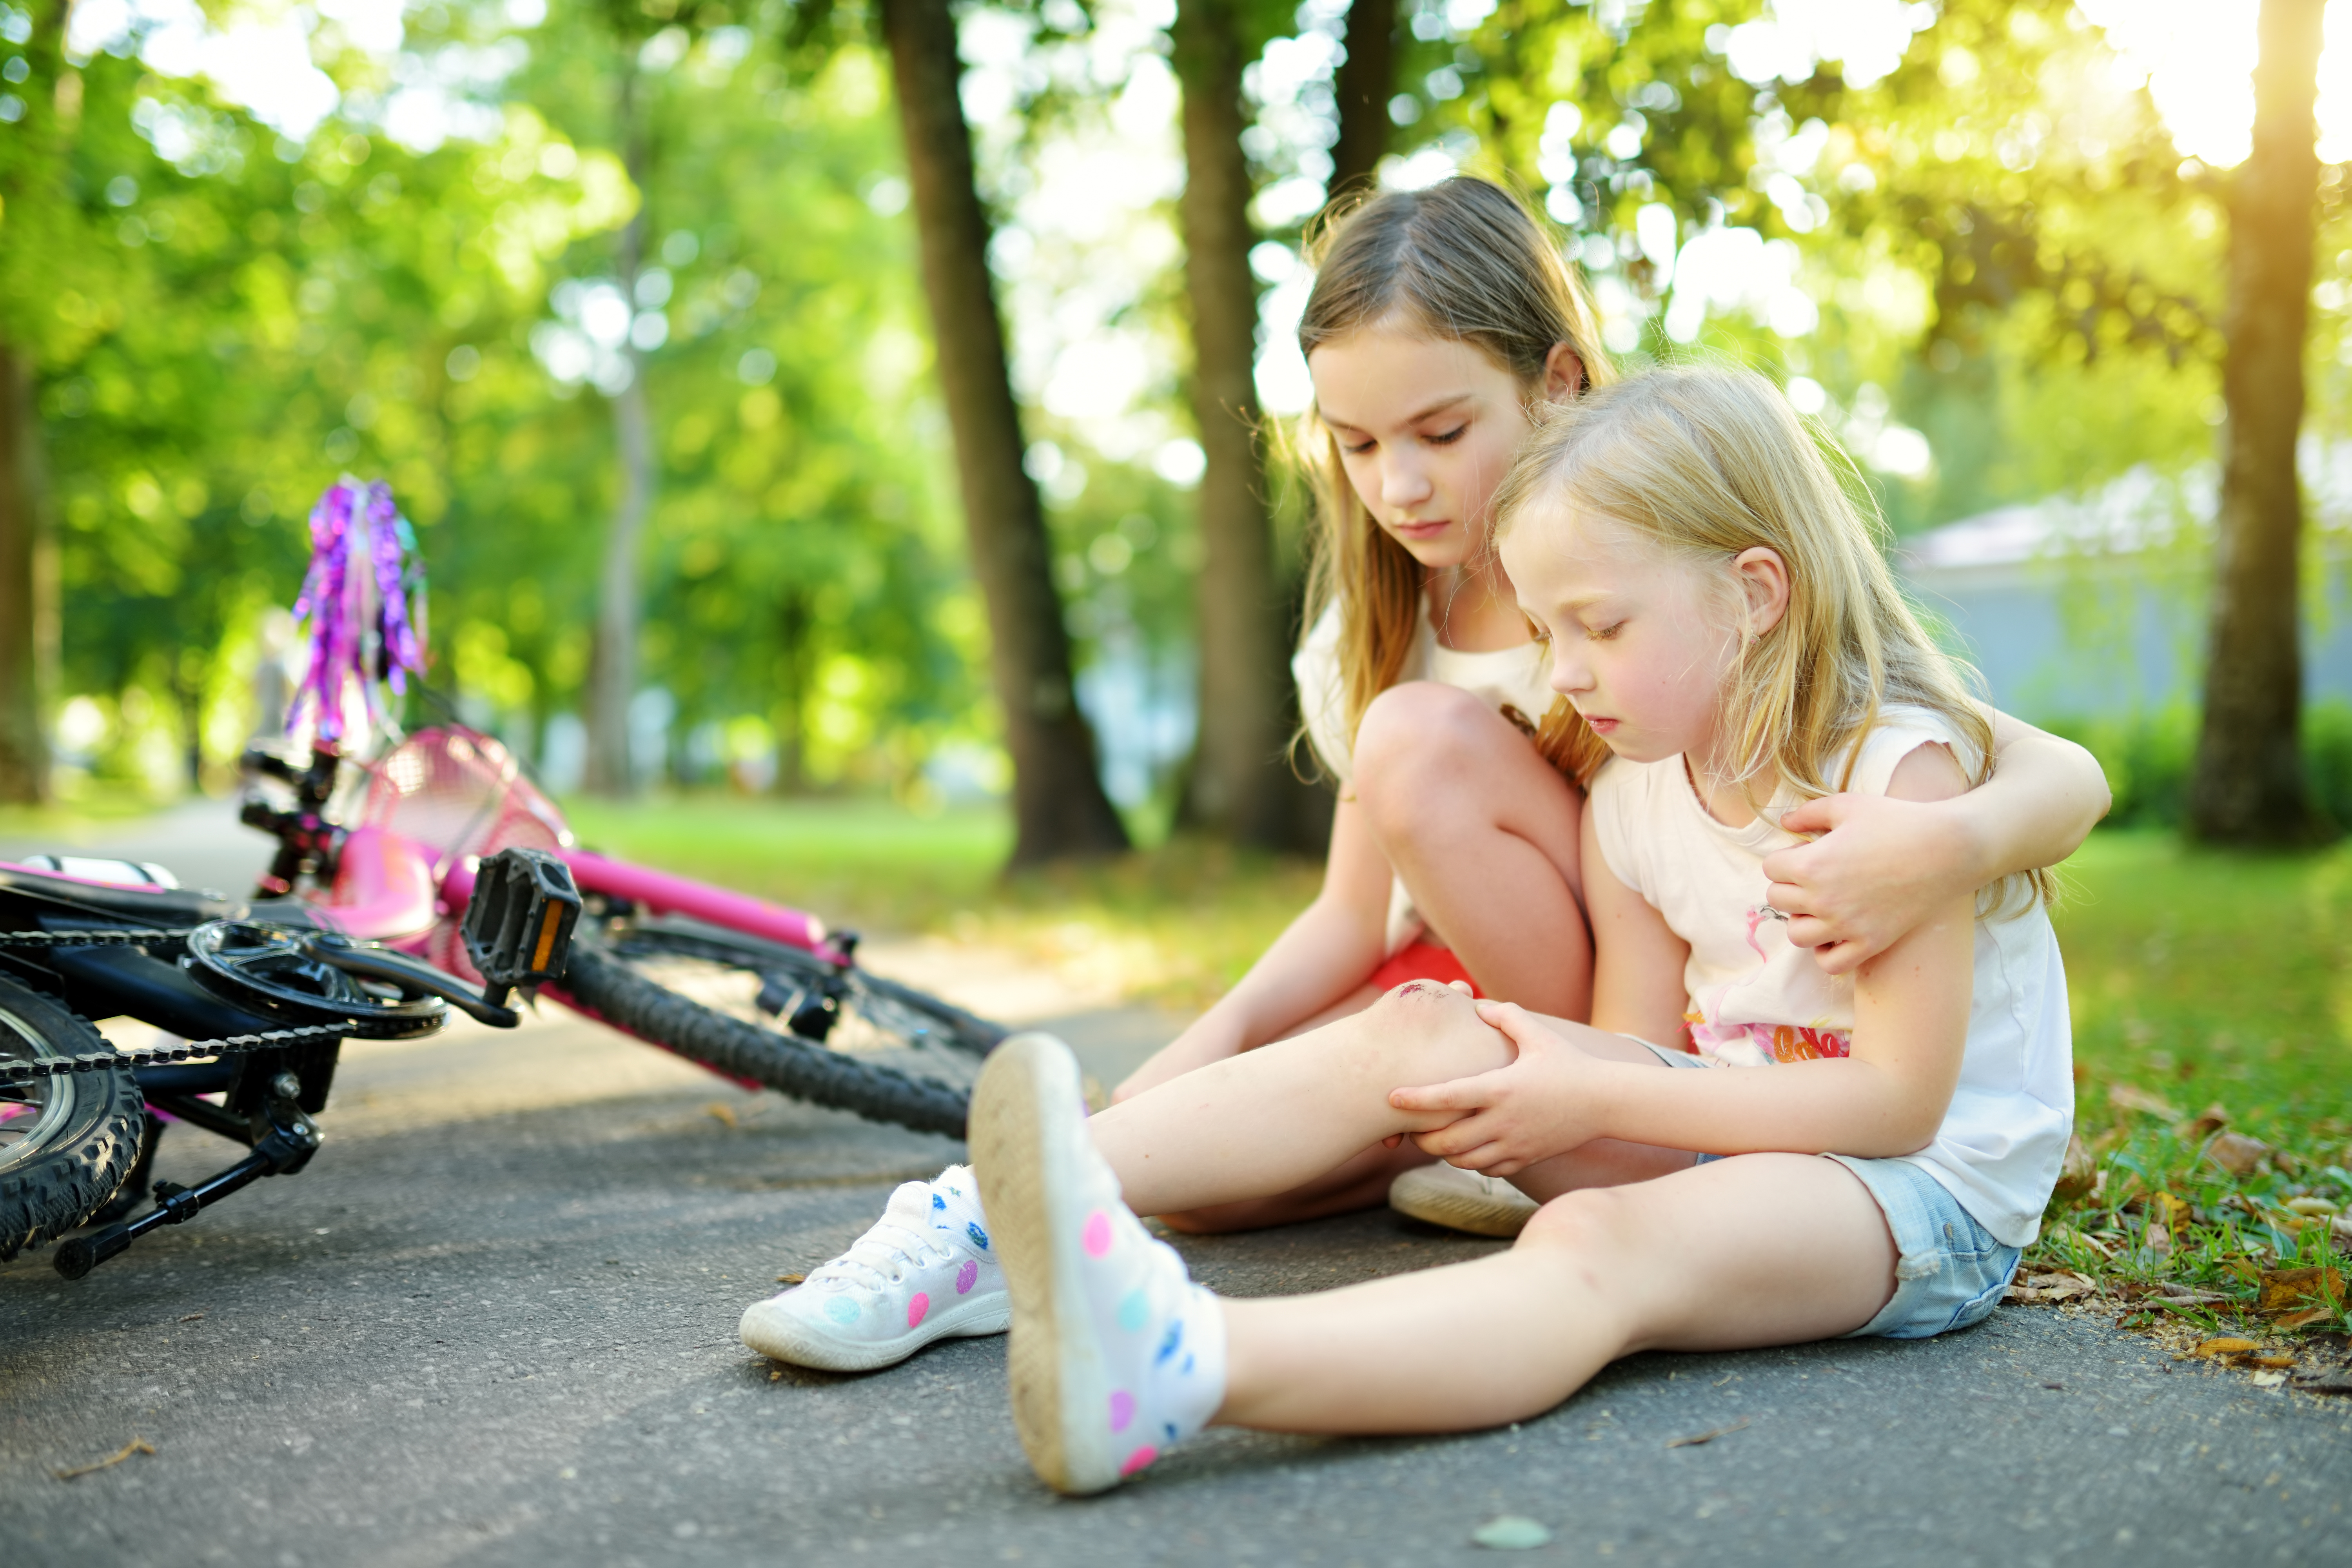 Adorable girl comforting her little sister after she fell off her bike at summer park. Child getting hurt while riding a bicycle.